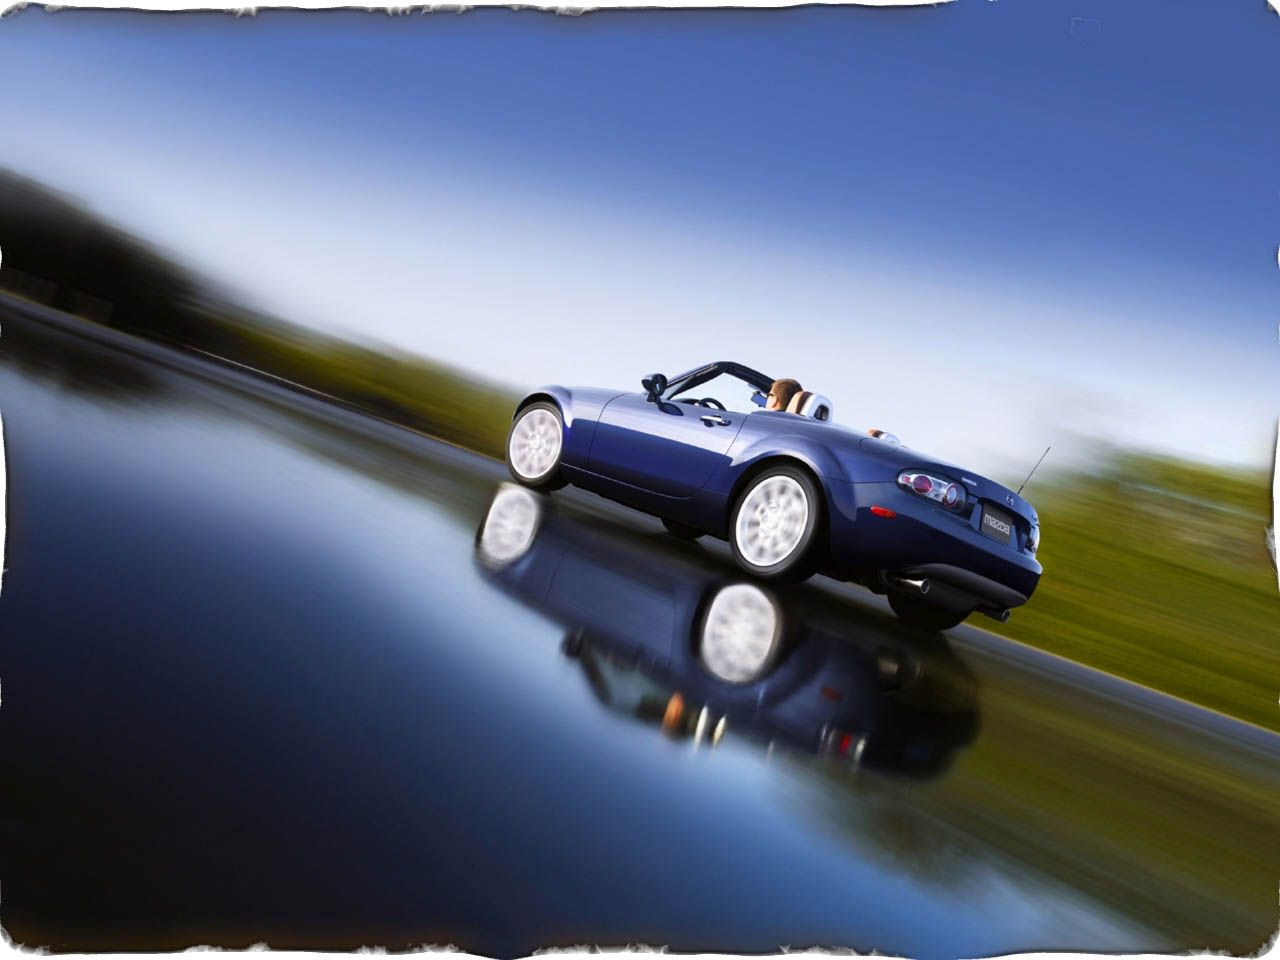 Mazda Mx5 Convertible Reflection Wallpaper 1280x960